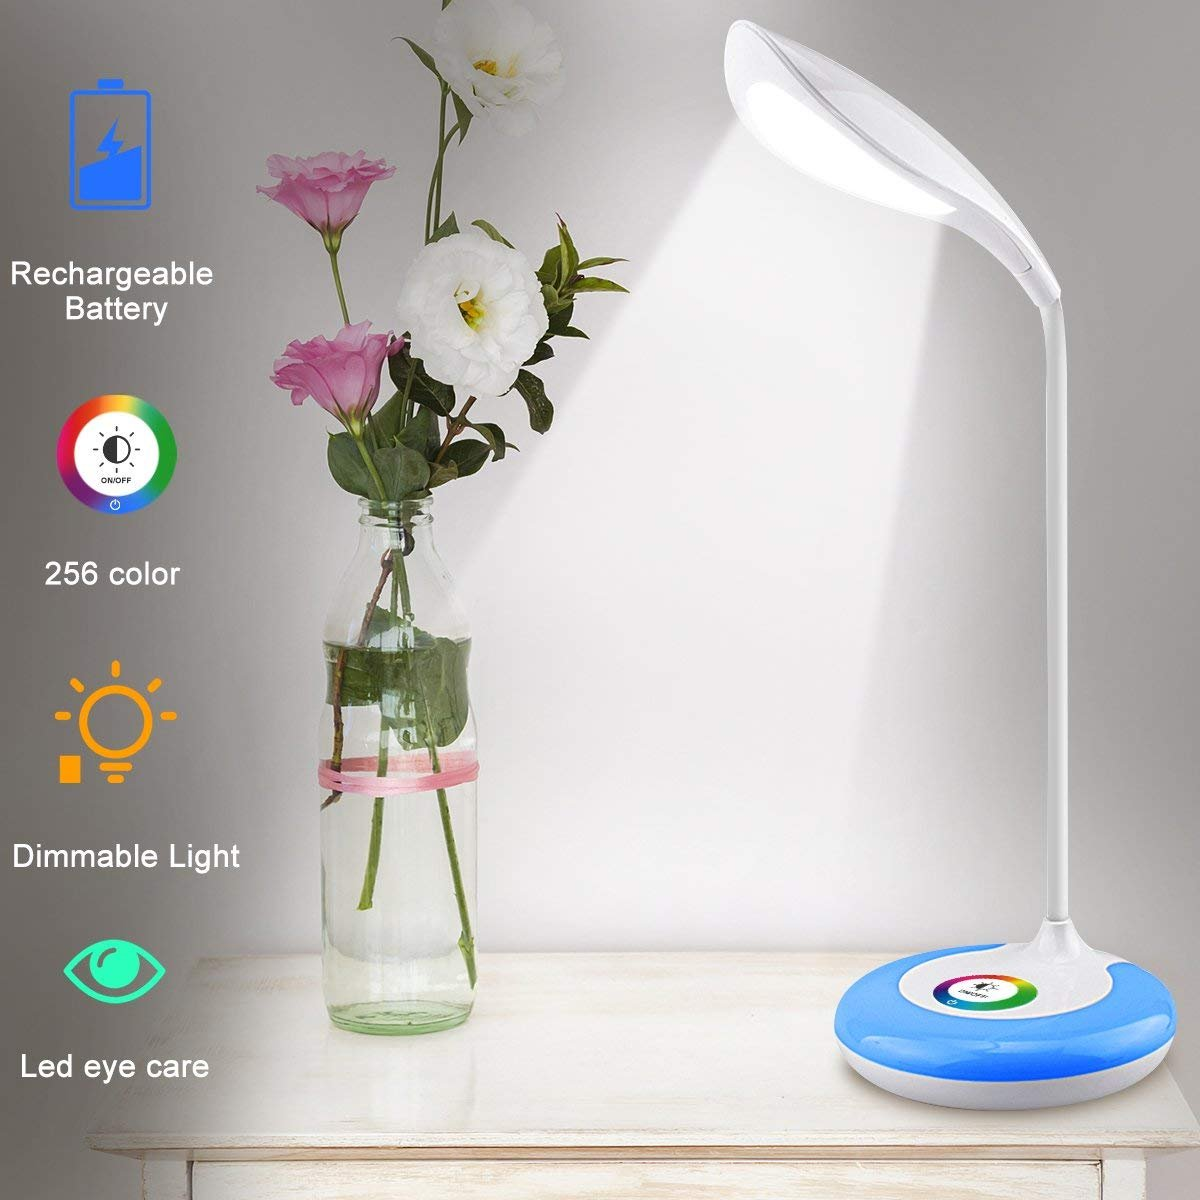 LED Desk Lamp,Desk Light Color Light Led Desk Reading Lights Led Table Lamps for Home Office With Wireless Touch Control Flexible Gooseneck 256 Color Changing Base and 3 Brightness Levels